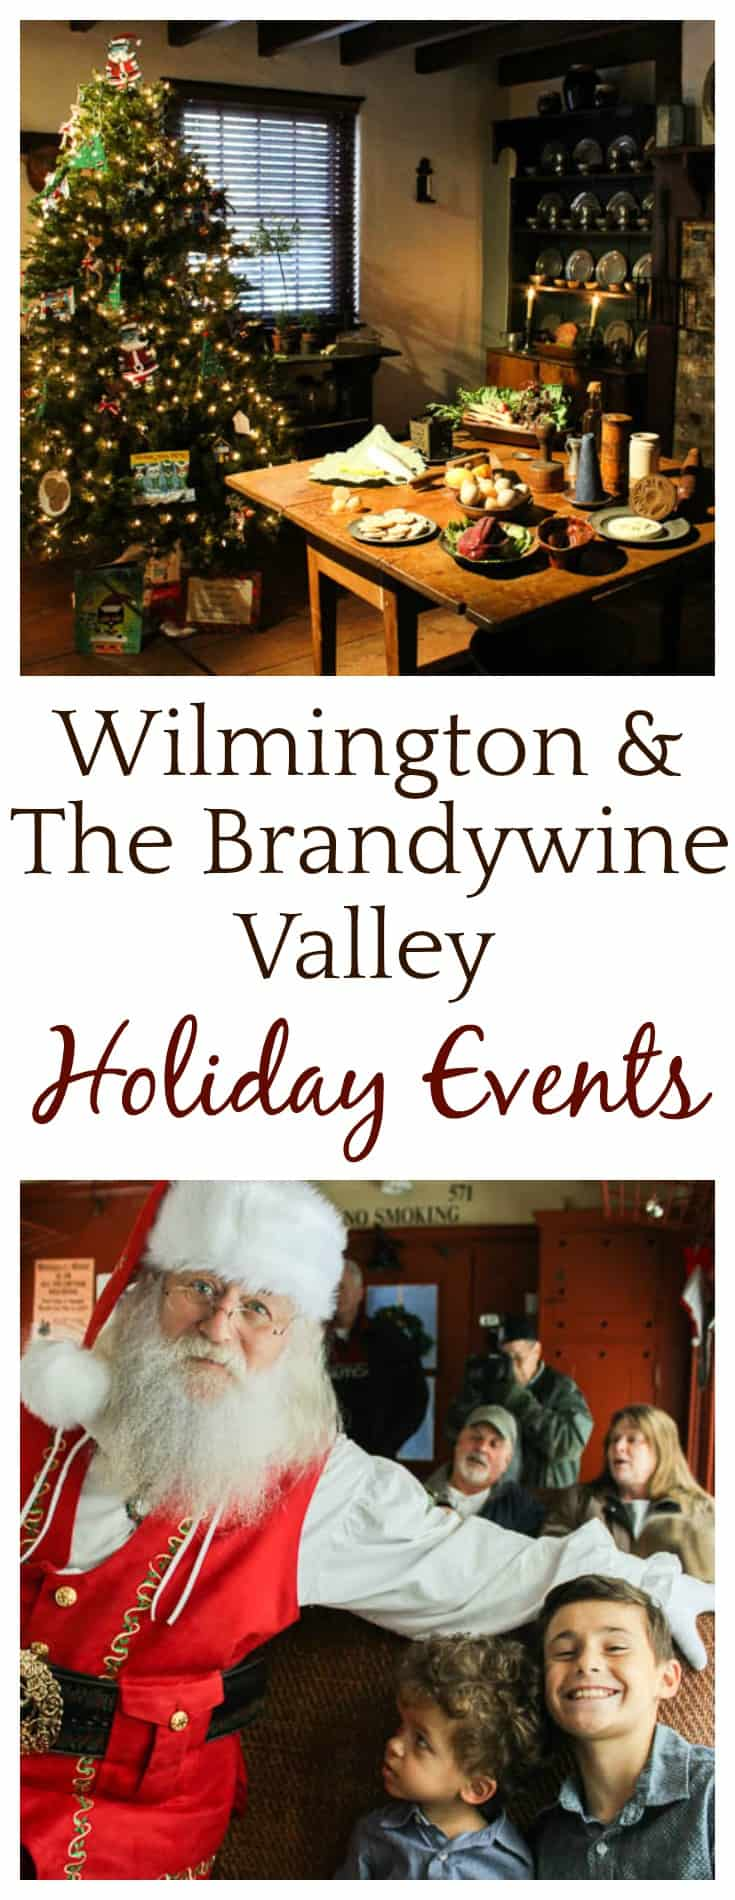 The 2017 Wilmington and The Brandywine Valley Holiday Attractions are sure to bring delight to all those who visit! | #visitwilm #sponsored #wilmington #delaware #brandywine #brandywinevalley #travel #holidayevents #christmas